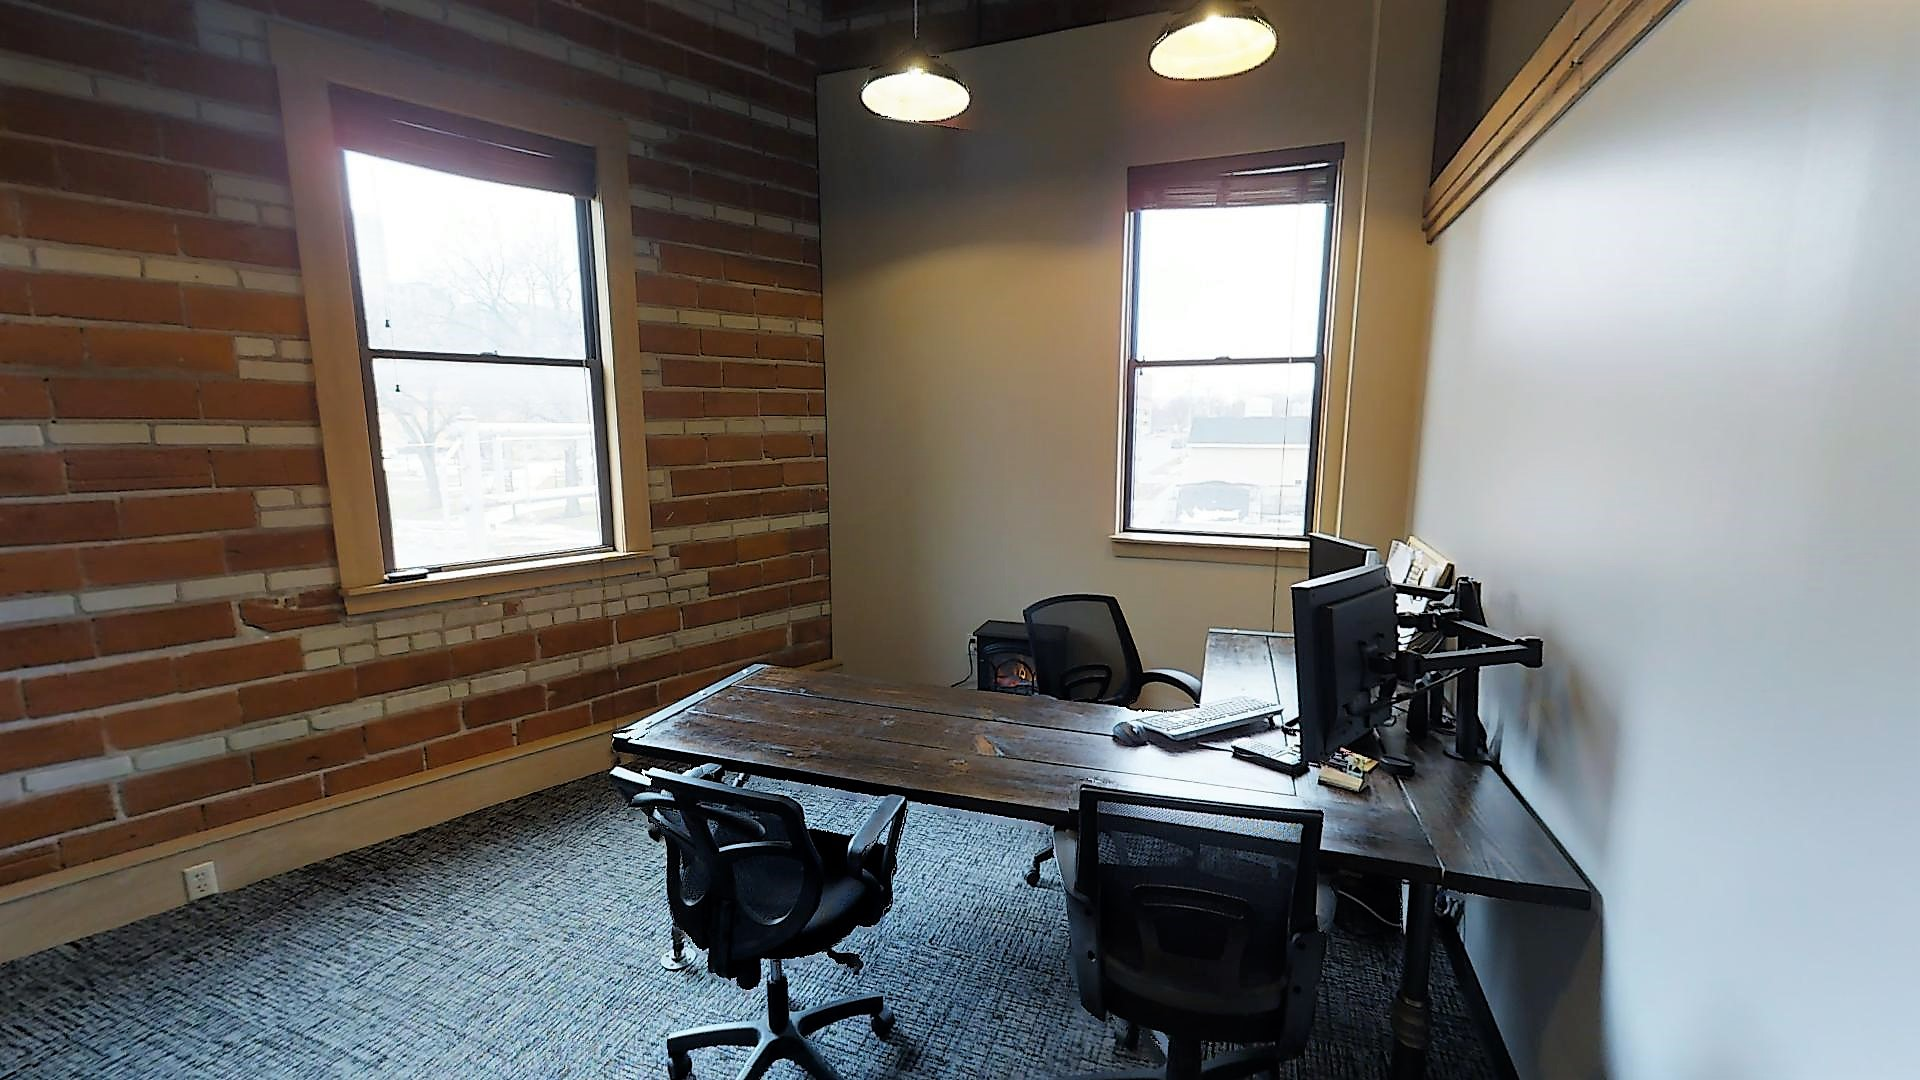 Realty Edge - Kyle's Office